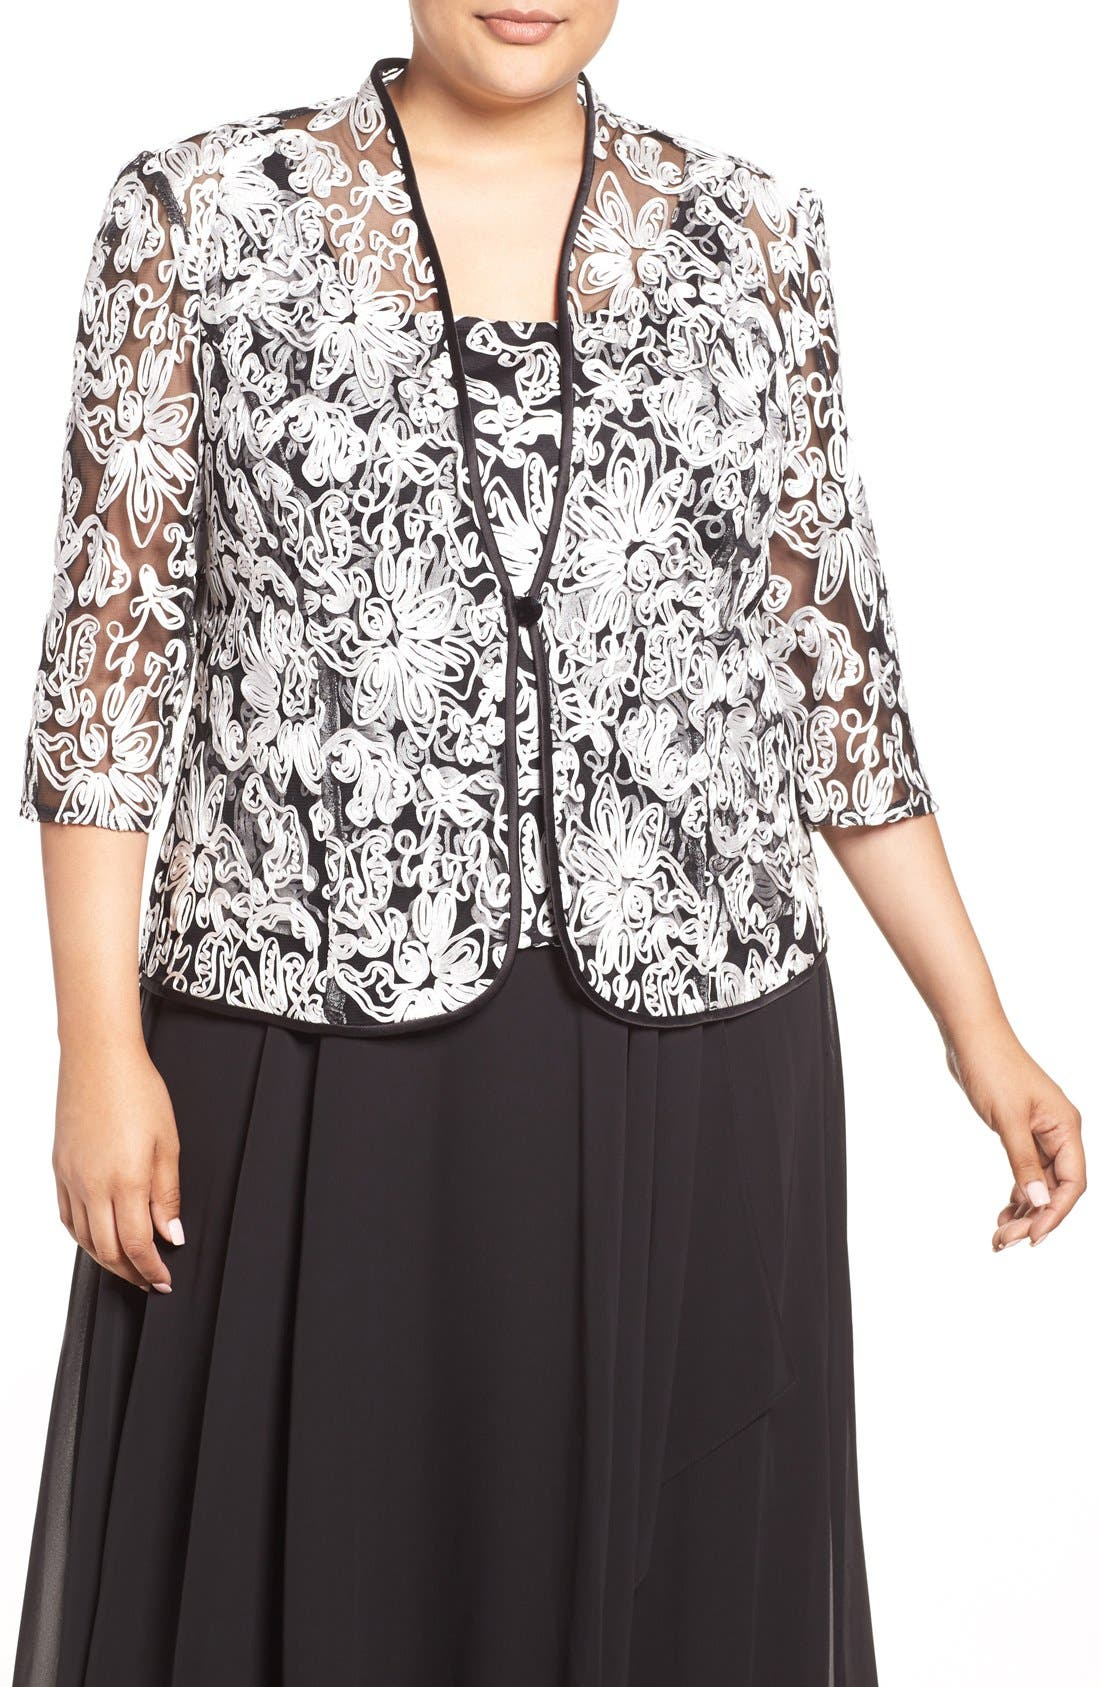 Embroidered Twinset,                         Main,                         color, Black/ White